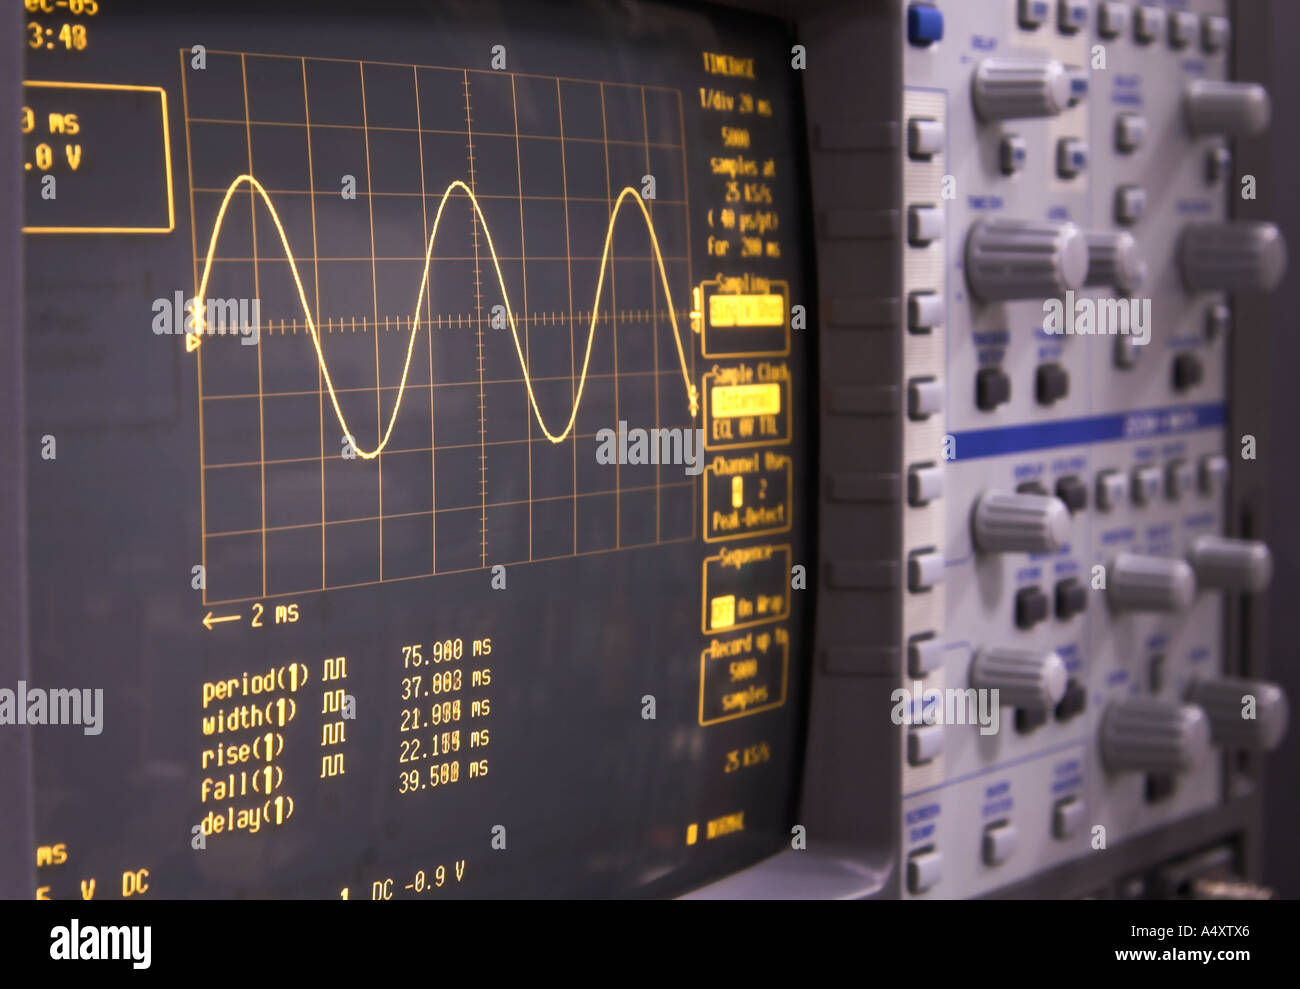 A modern digital LeCroy oscilloscope, brand name not visible - Stock Image